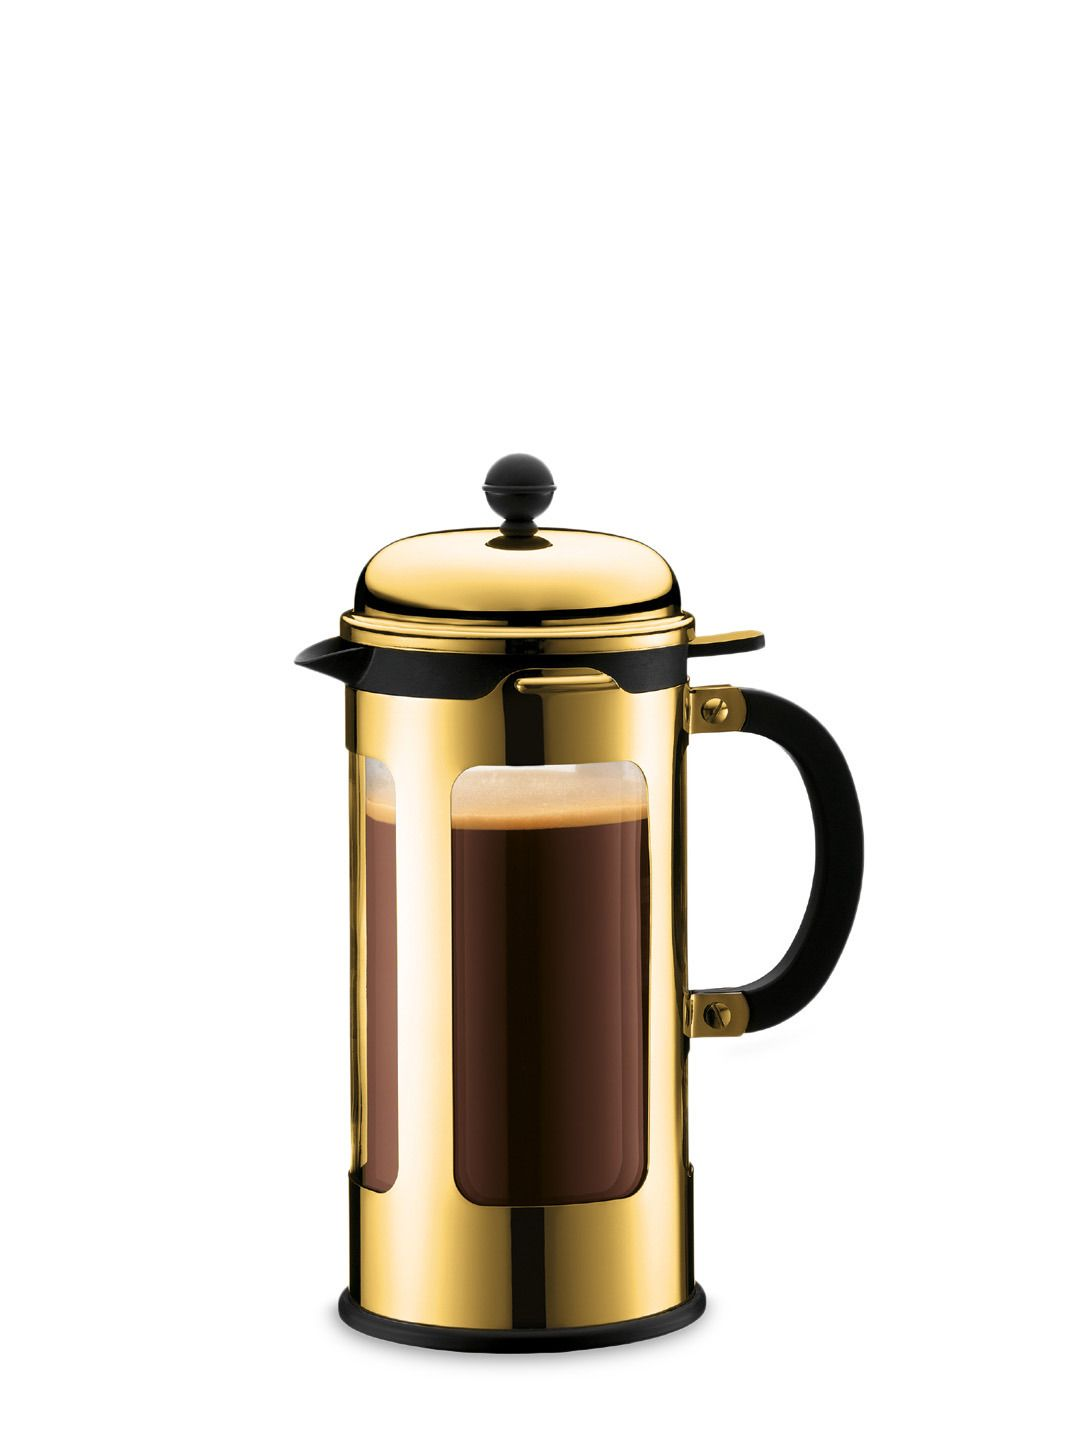 Bodum Gold Chambord French Press (via Gilt) $40.00 #Coffee